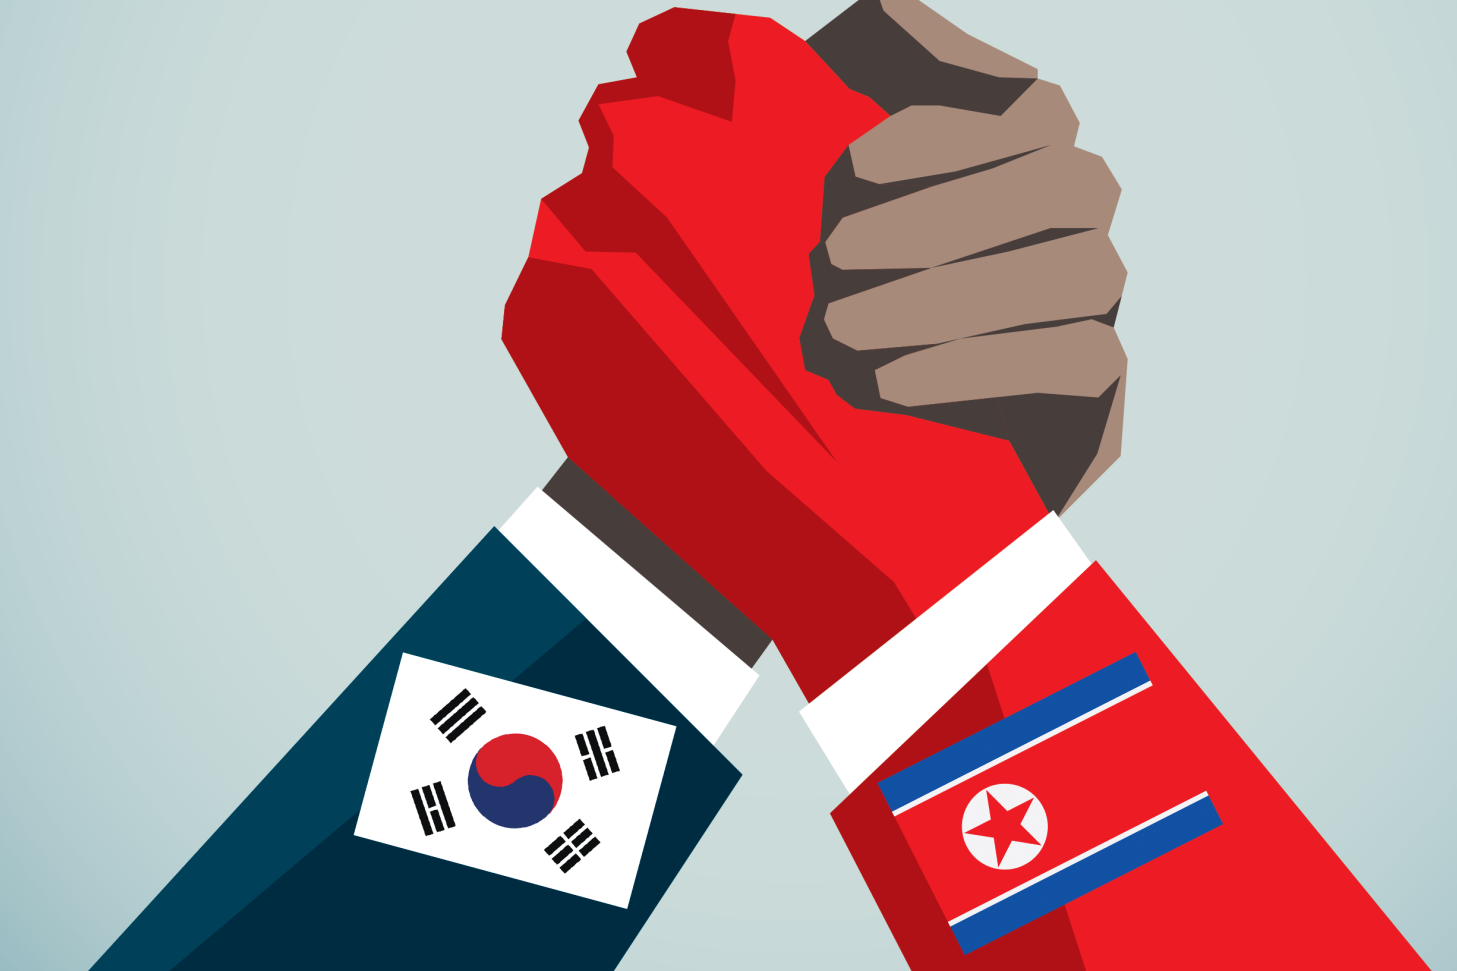 Will the leaders of North and South Korea meet before Trump's visit?